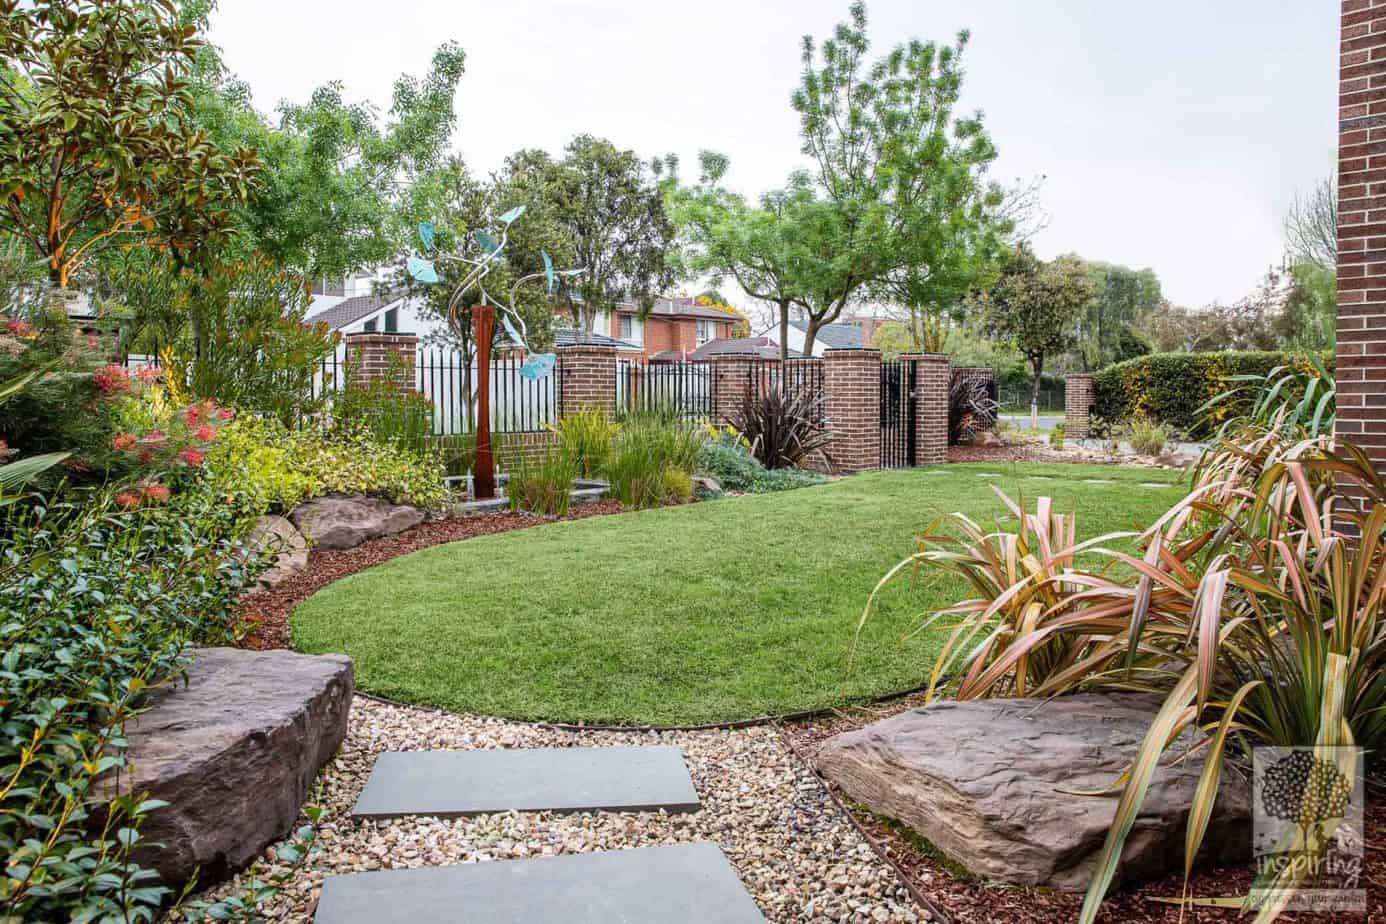 Glen Waverley front garden design with lawn, large rocks and mixed planting of exotics and native Australian plants